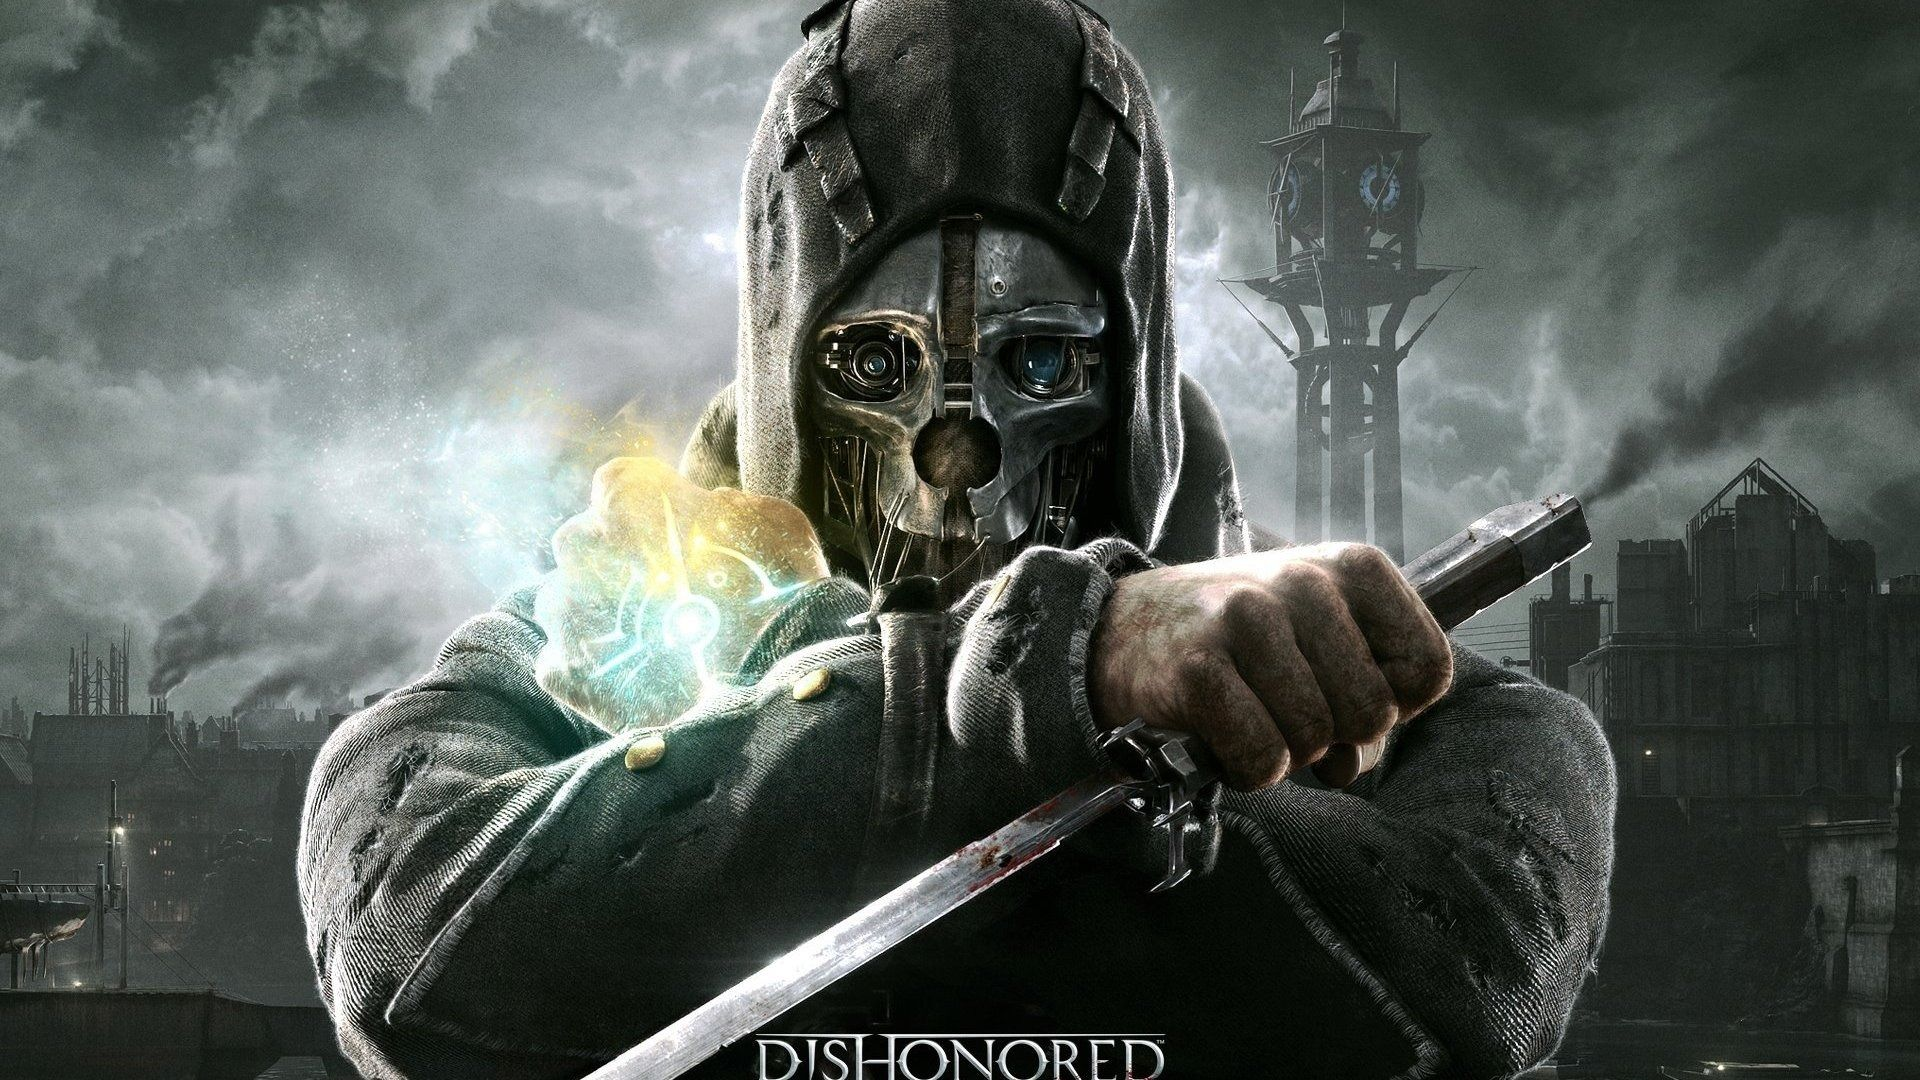 dishonored games hd 1080p wallpapers download | dishorned